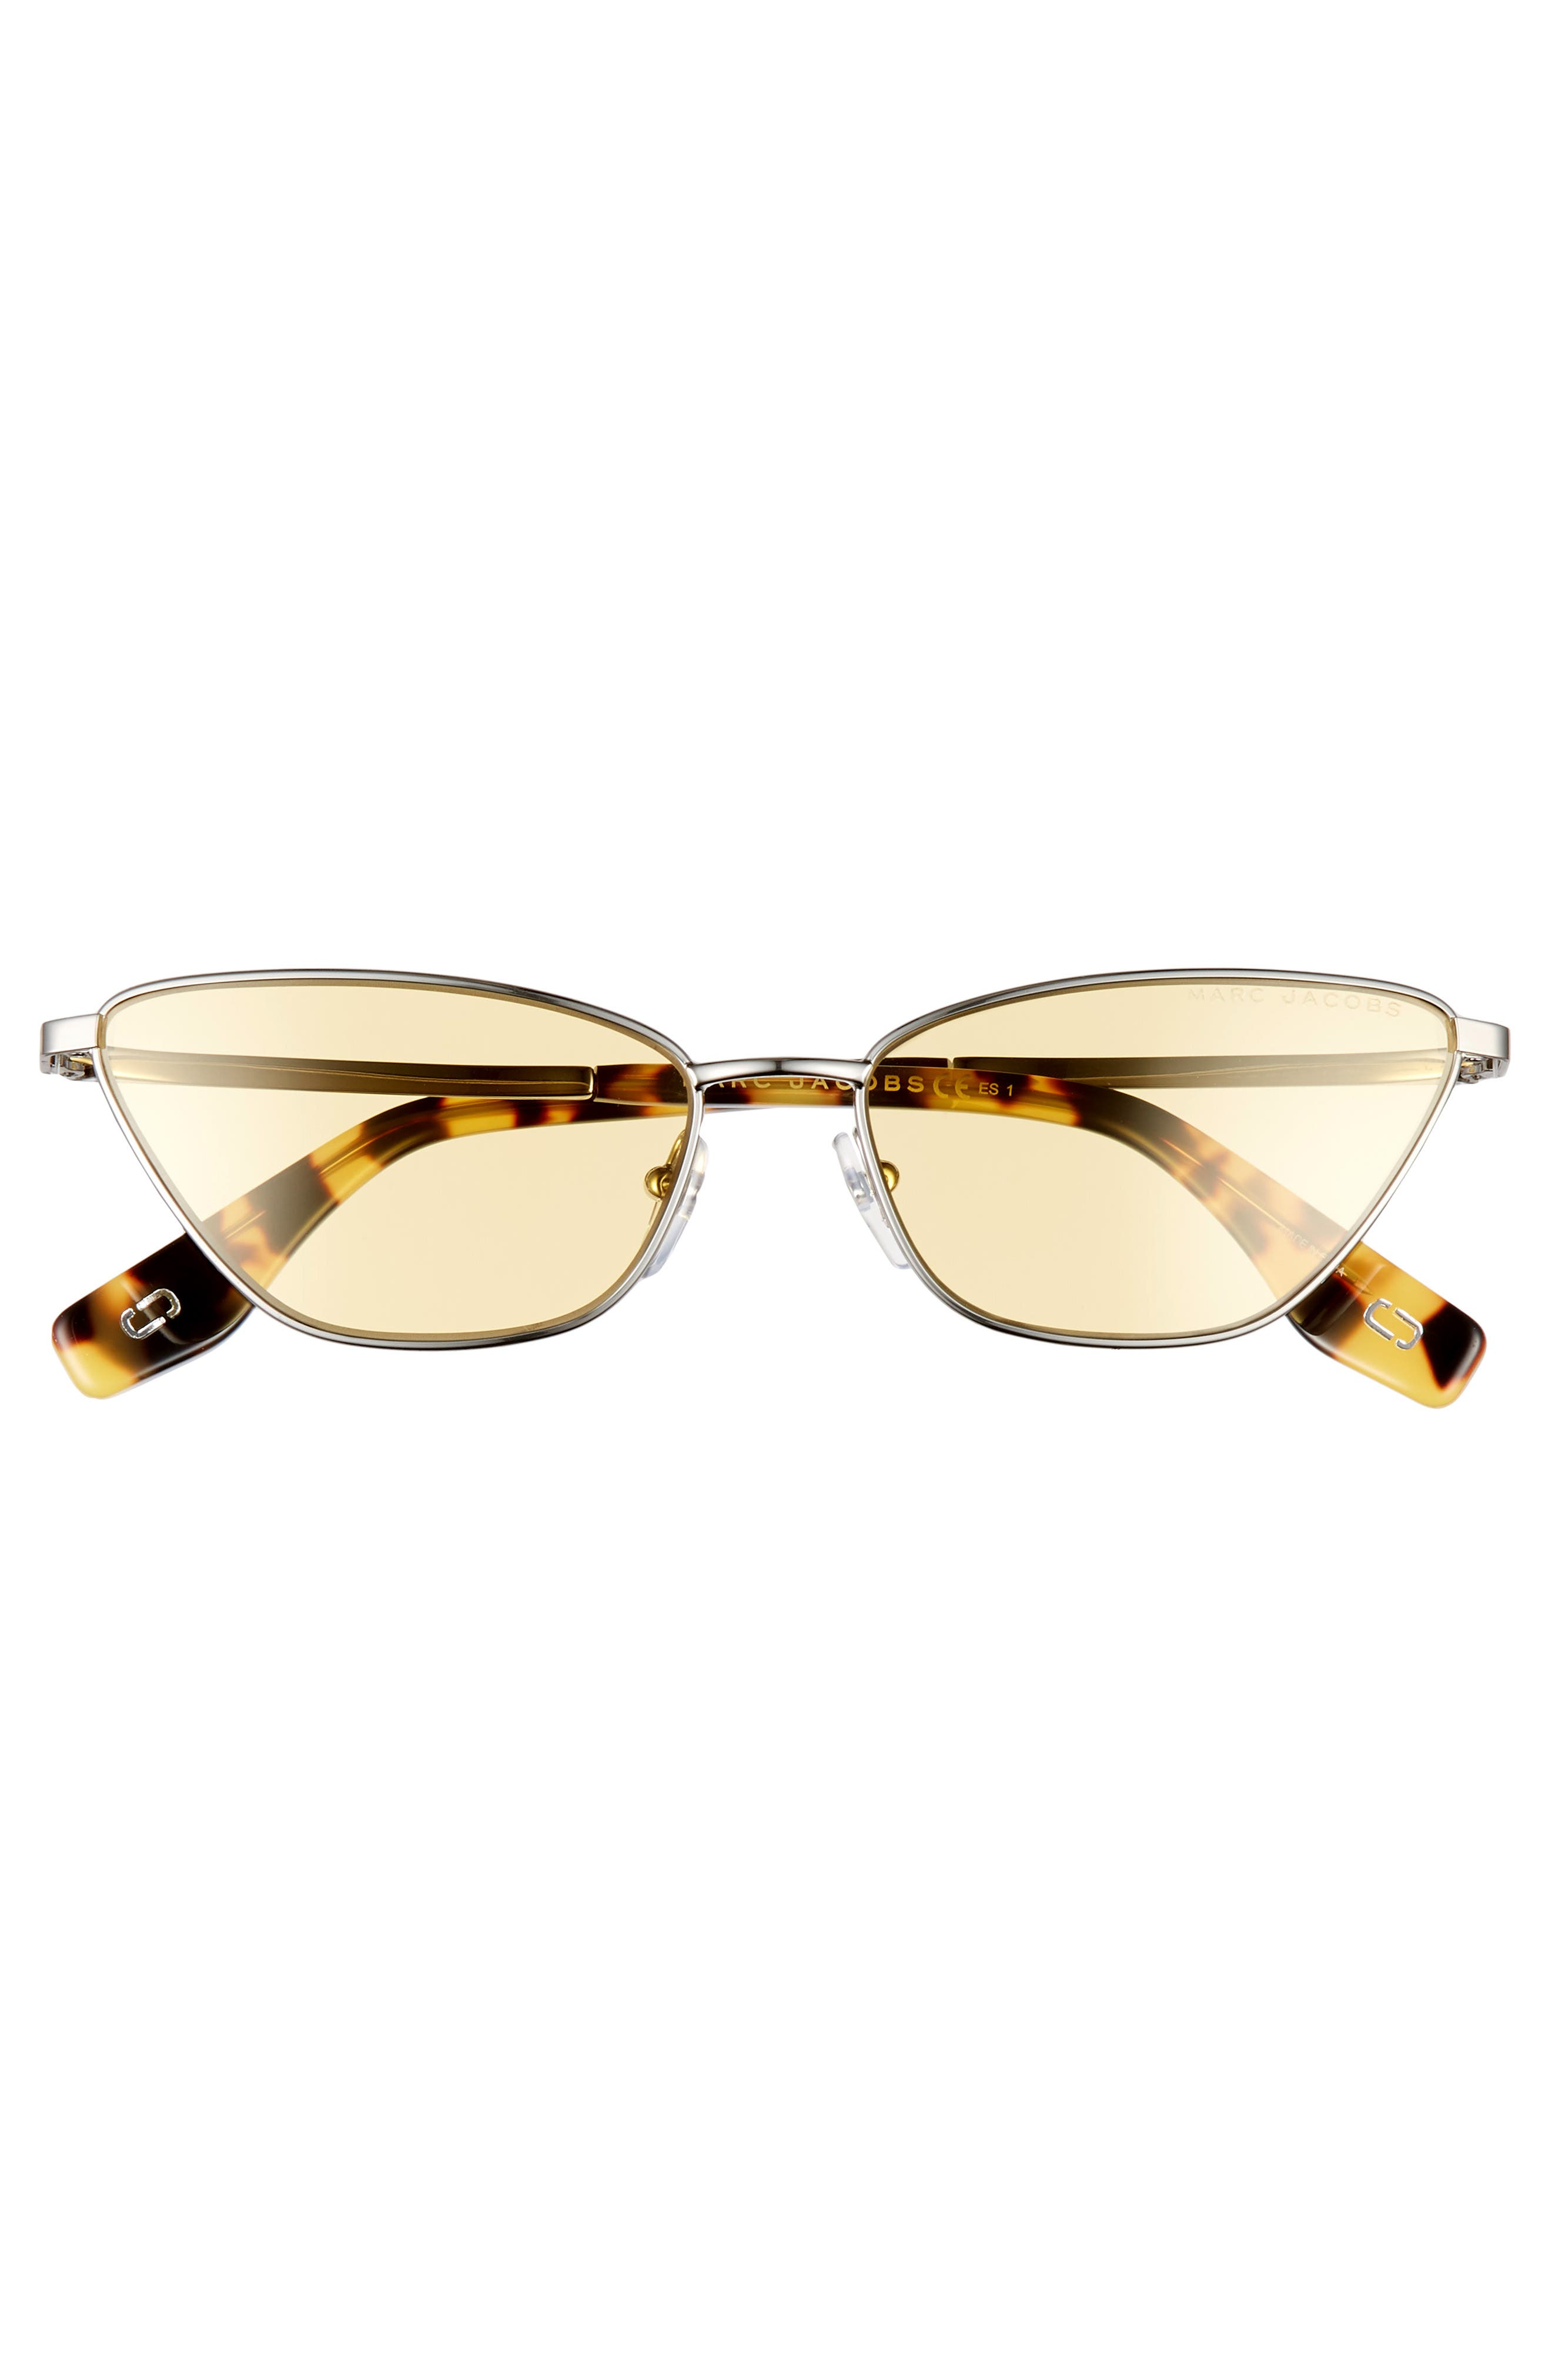 MARC JACOBS, 57mm Cat Eye Sunglasses, Alternate thumbnail 3, color, SILVER/ YELLOW